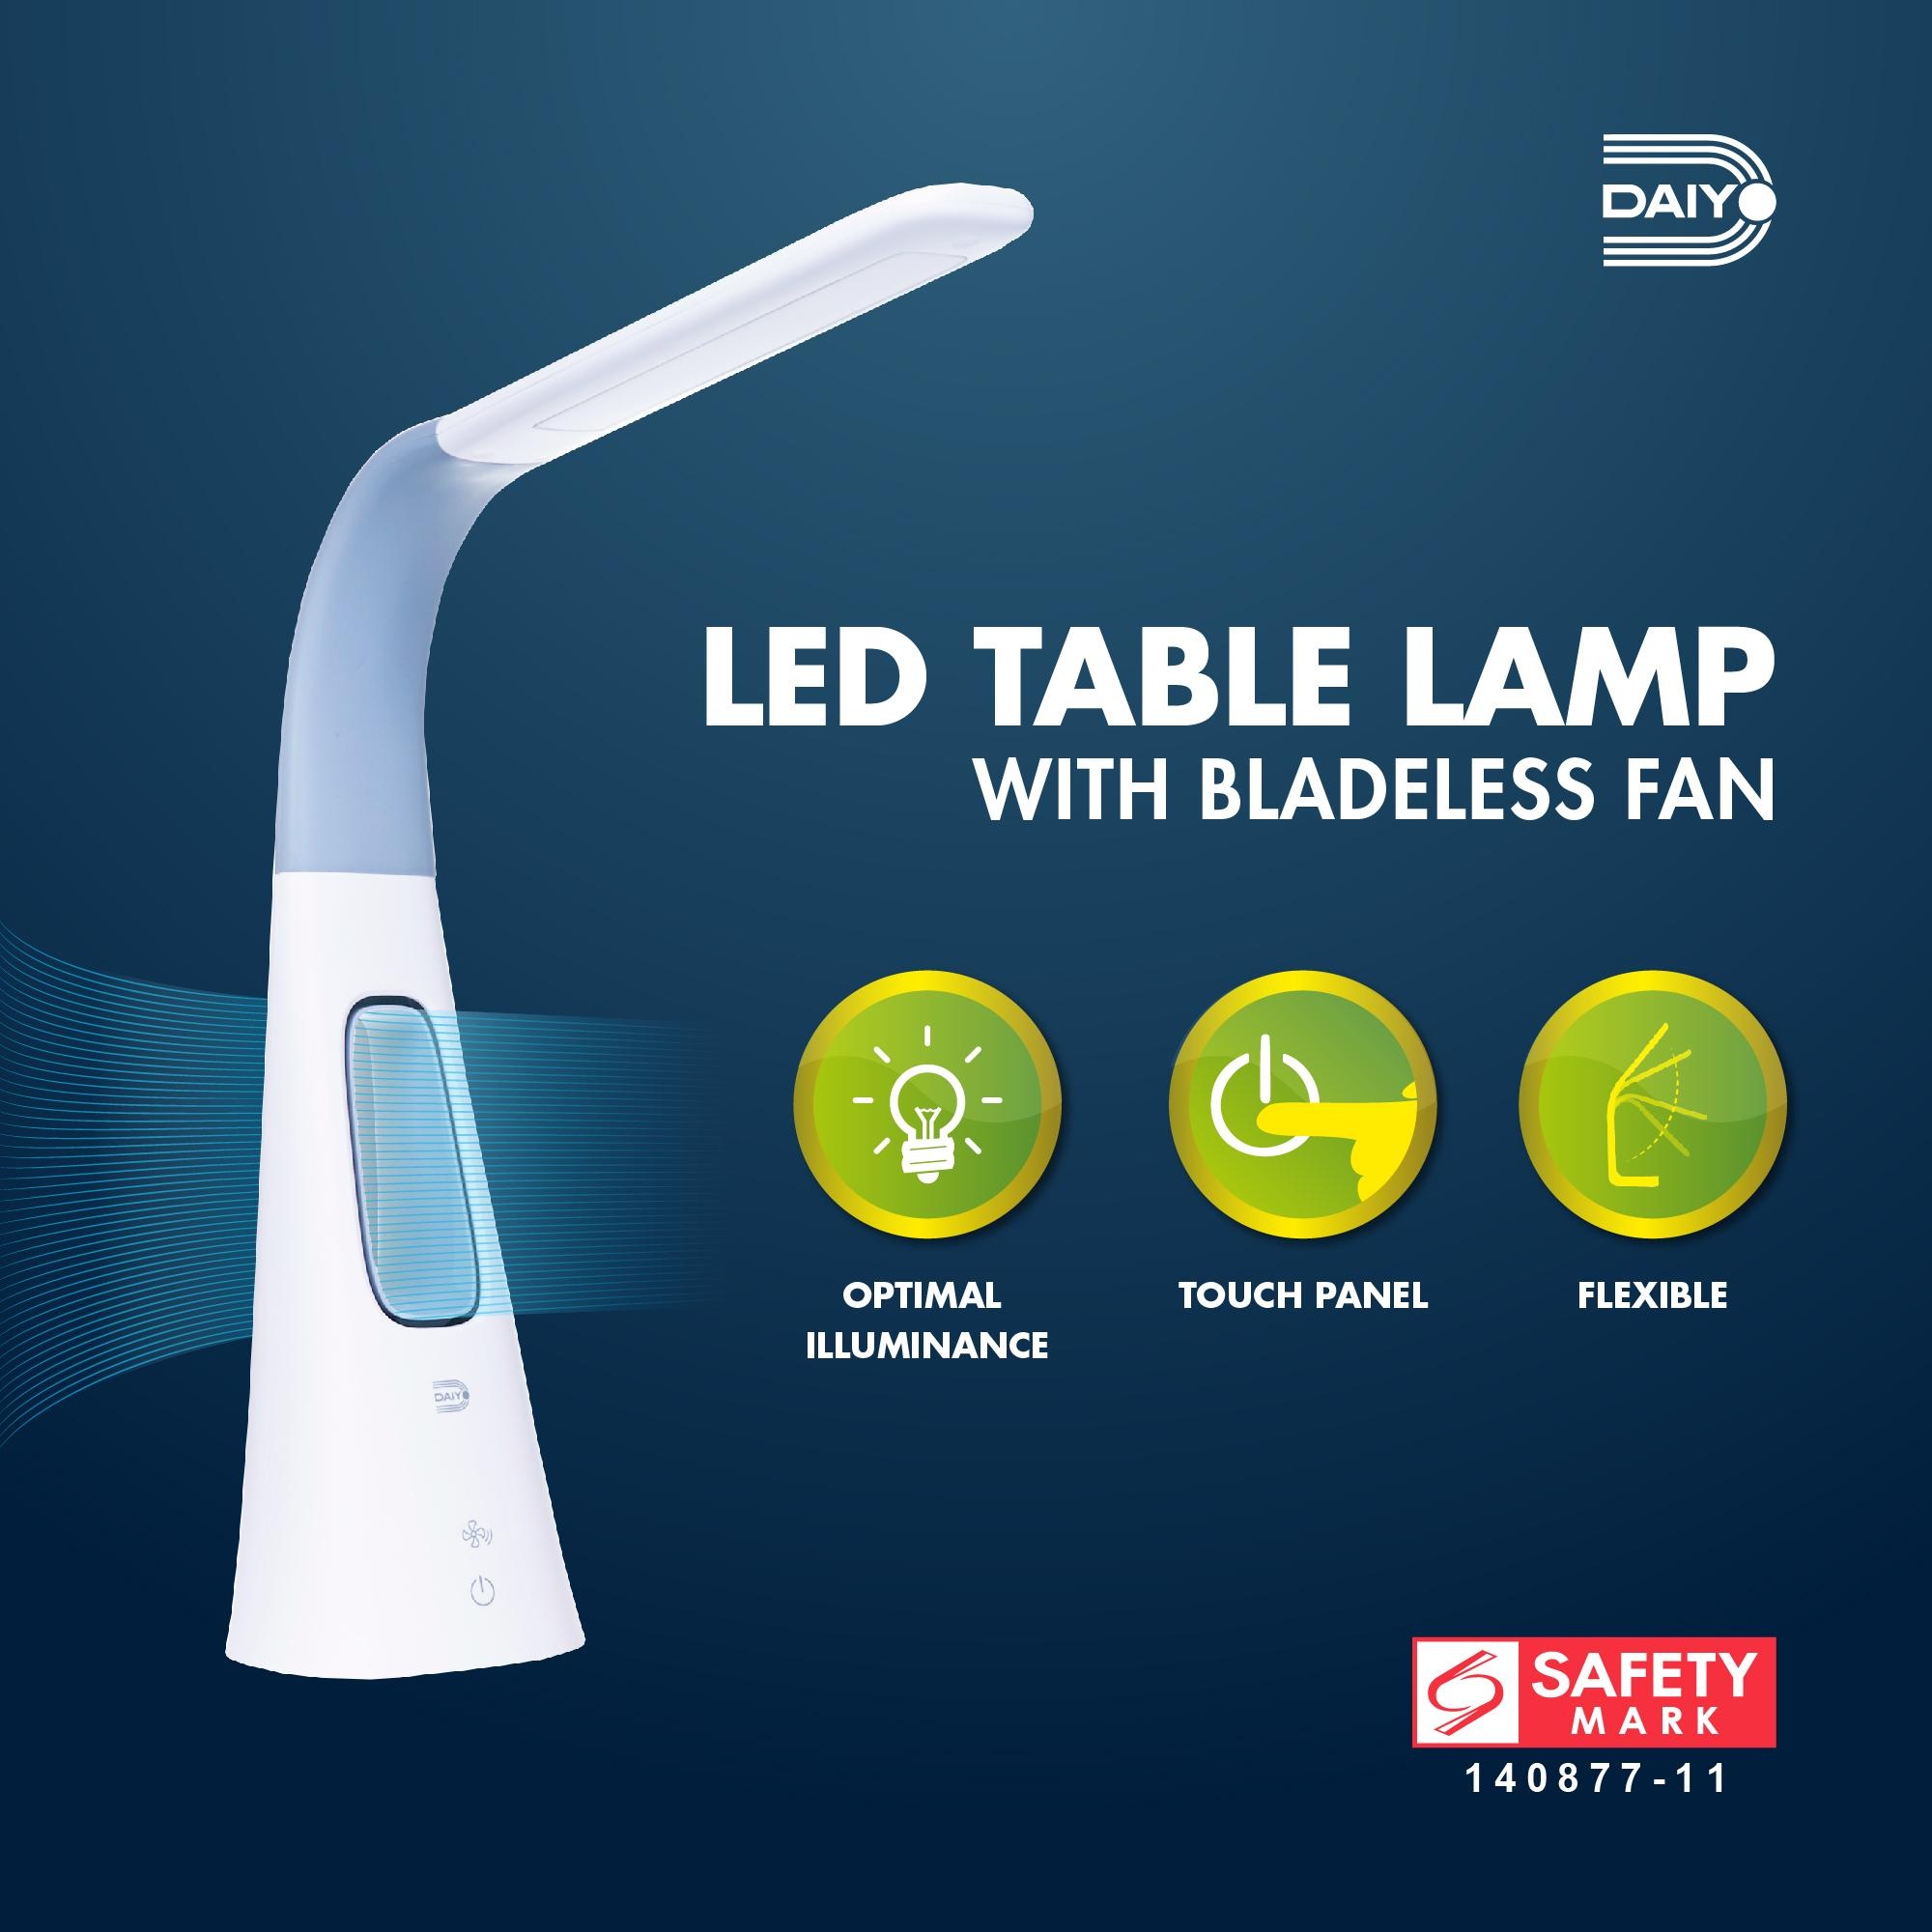 Daiyo LED Flexible Table Lamp with Bladeless Fan, Dimmer Power Control (Grey)